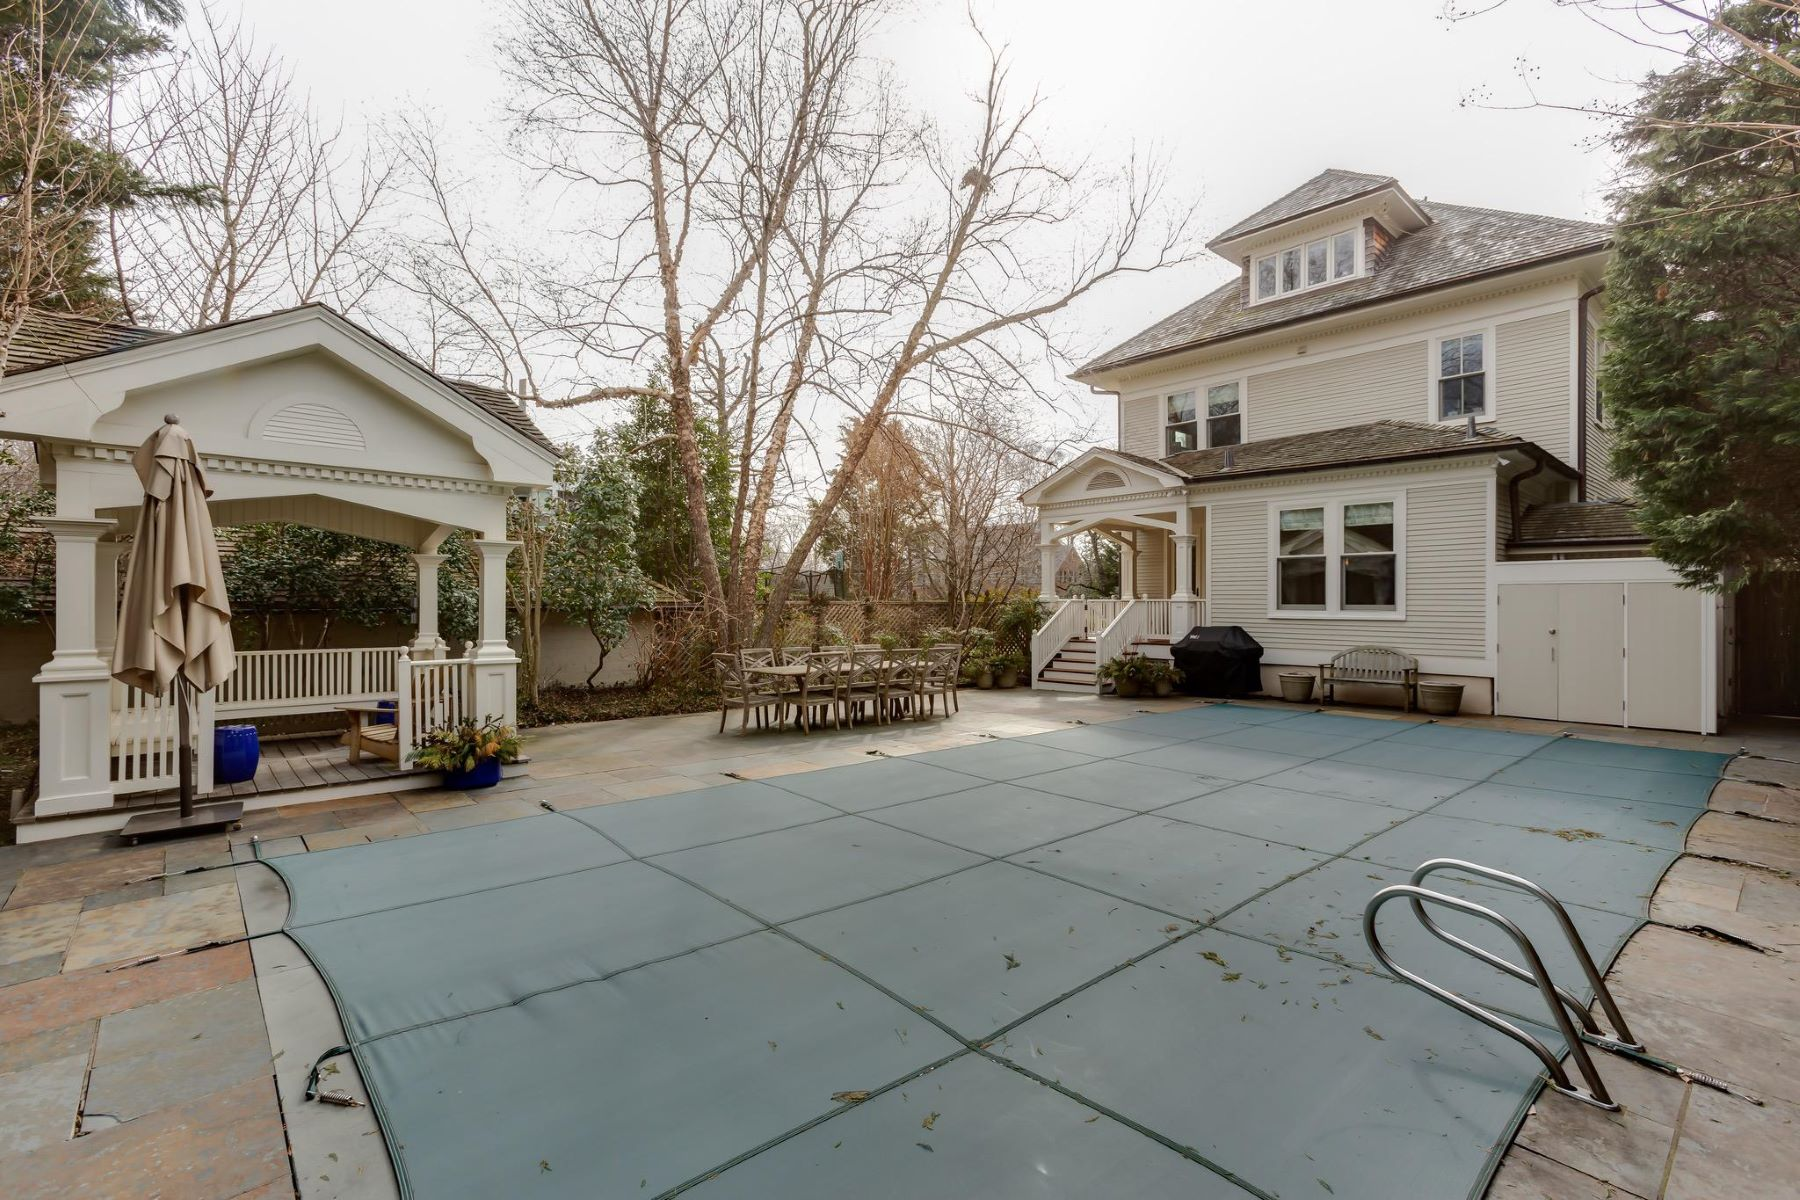 Additional photo for property listing at 3601 Newark St NW Washington, District Of Columbia 20016 United States